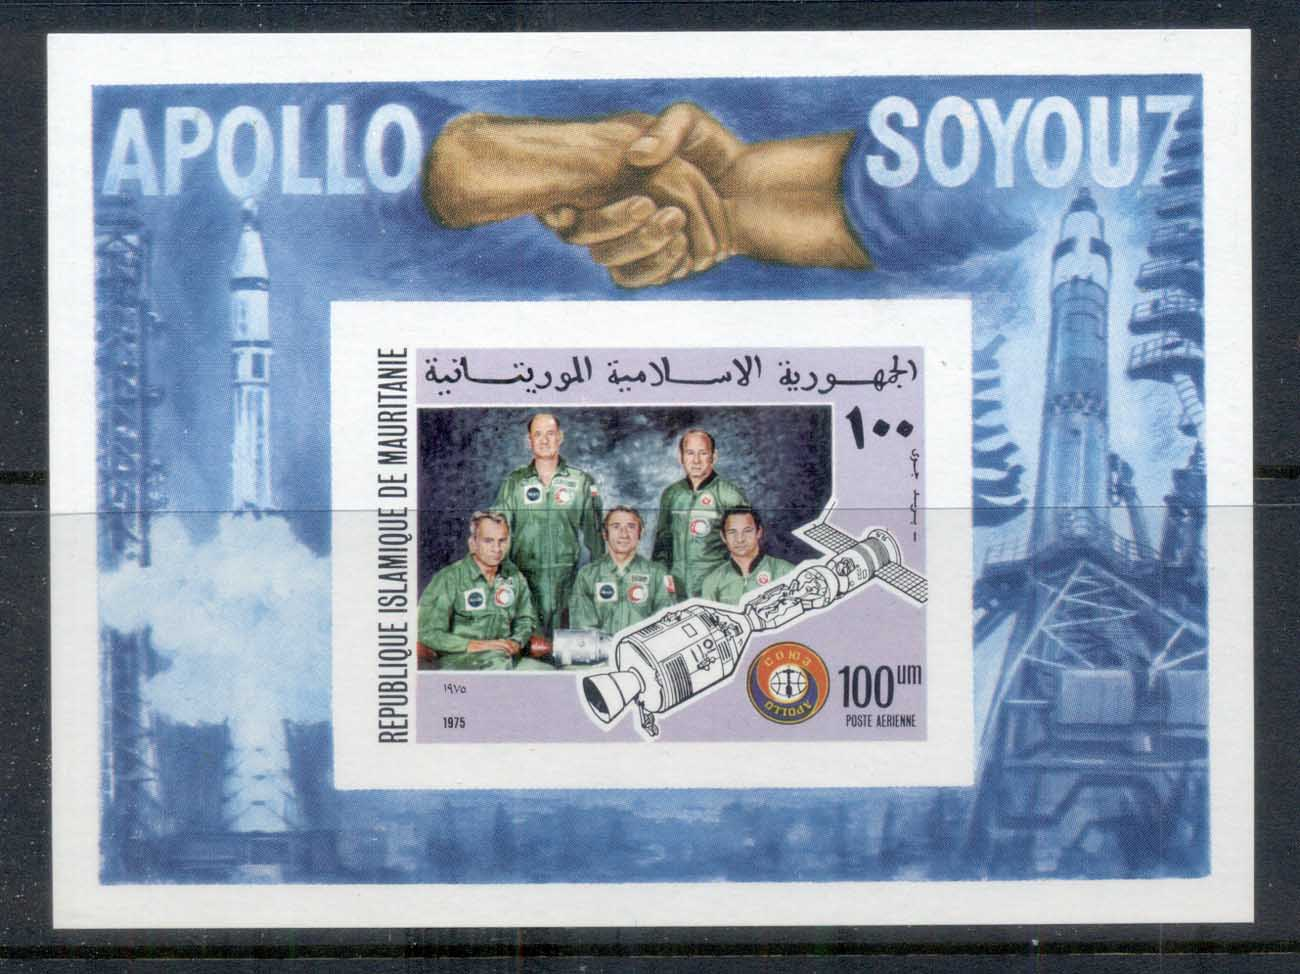 Mauritania 1975 Apollo-Soyuz Joint Russia/USA Space Project IMPERF MS MUH